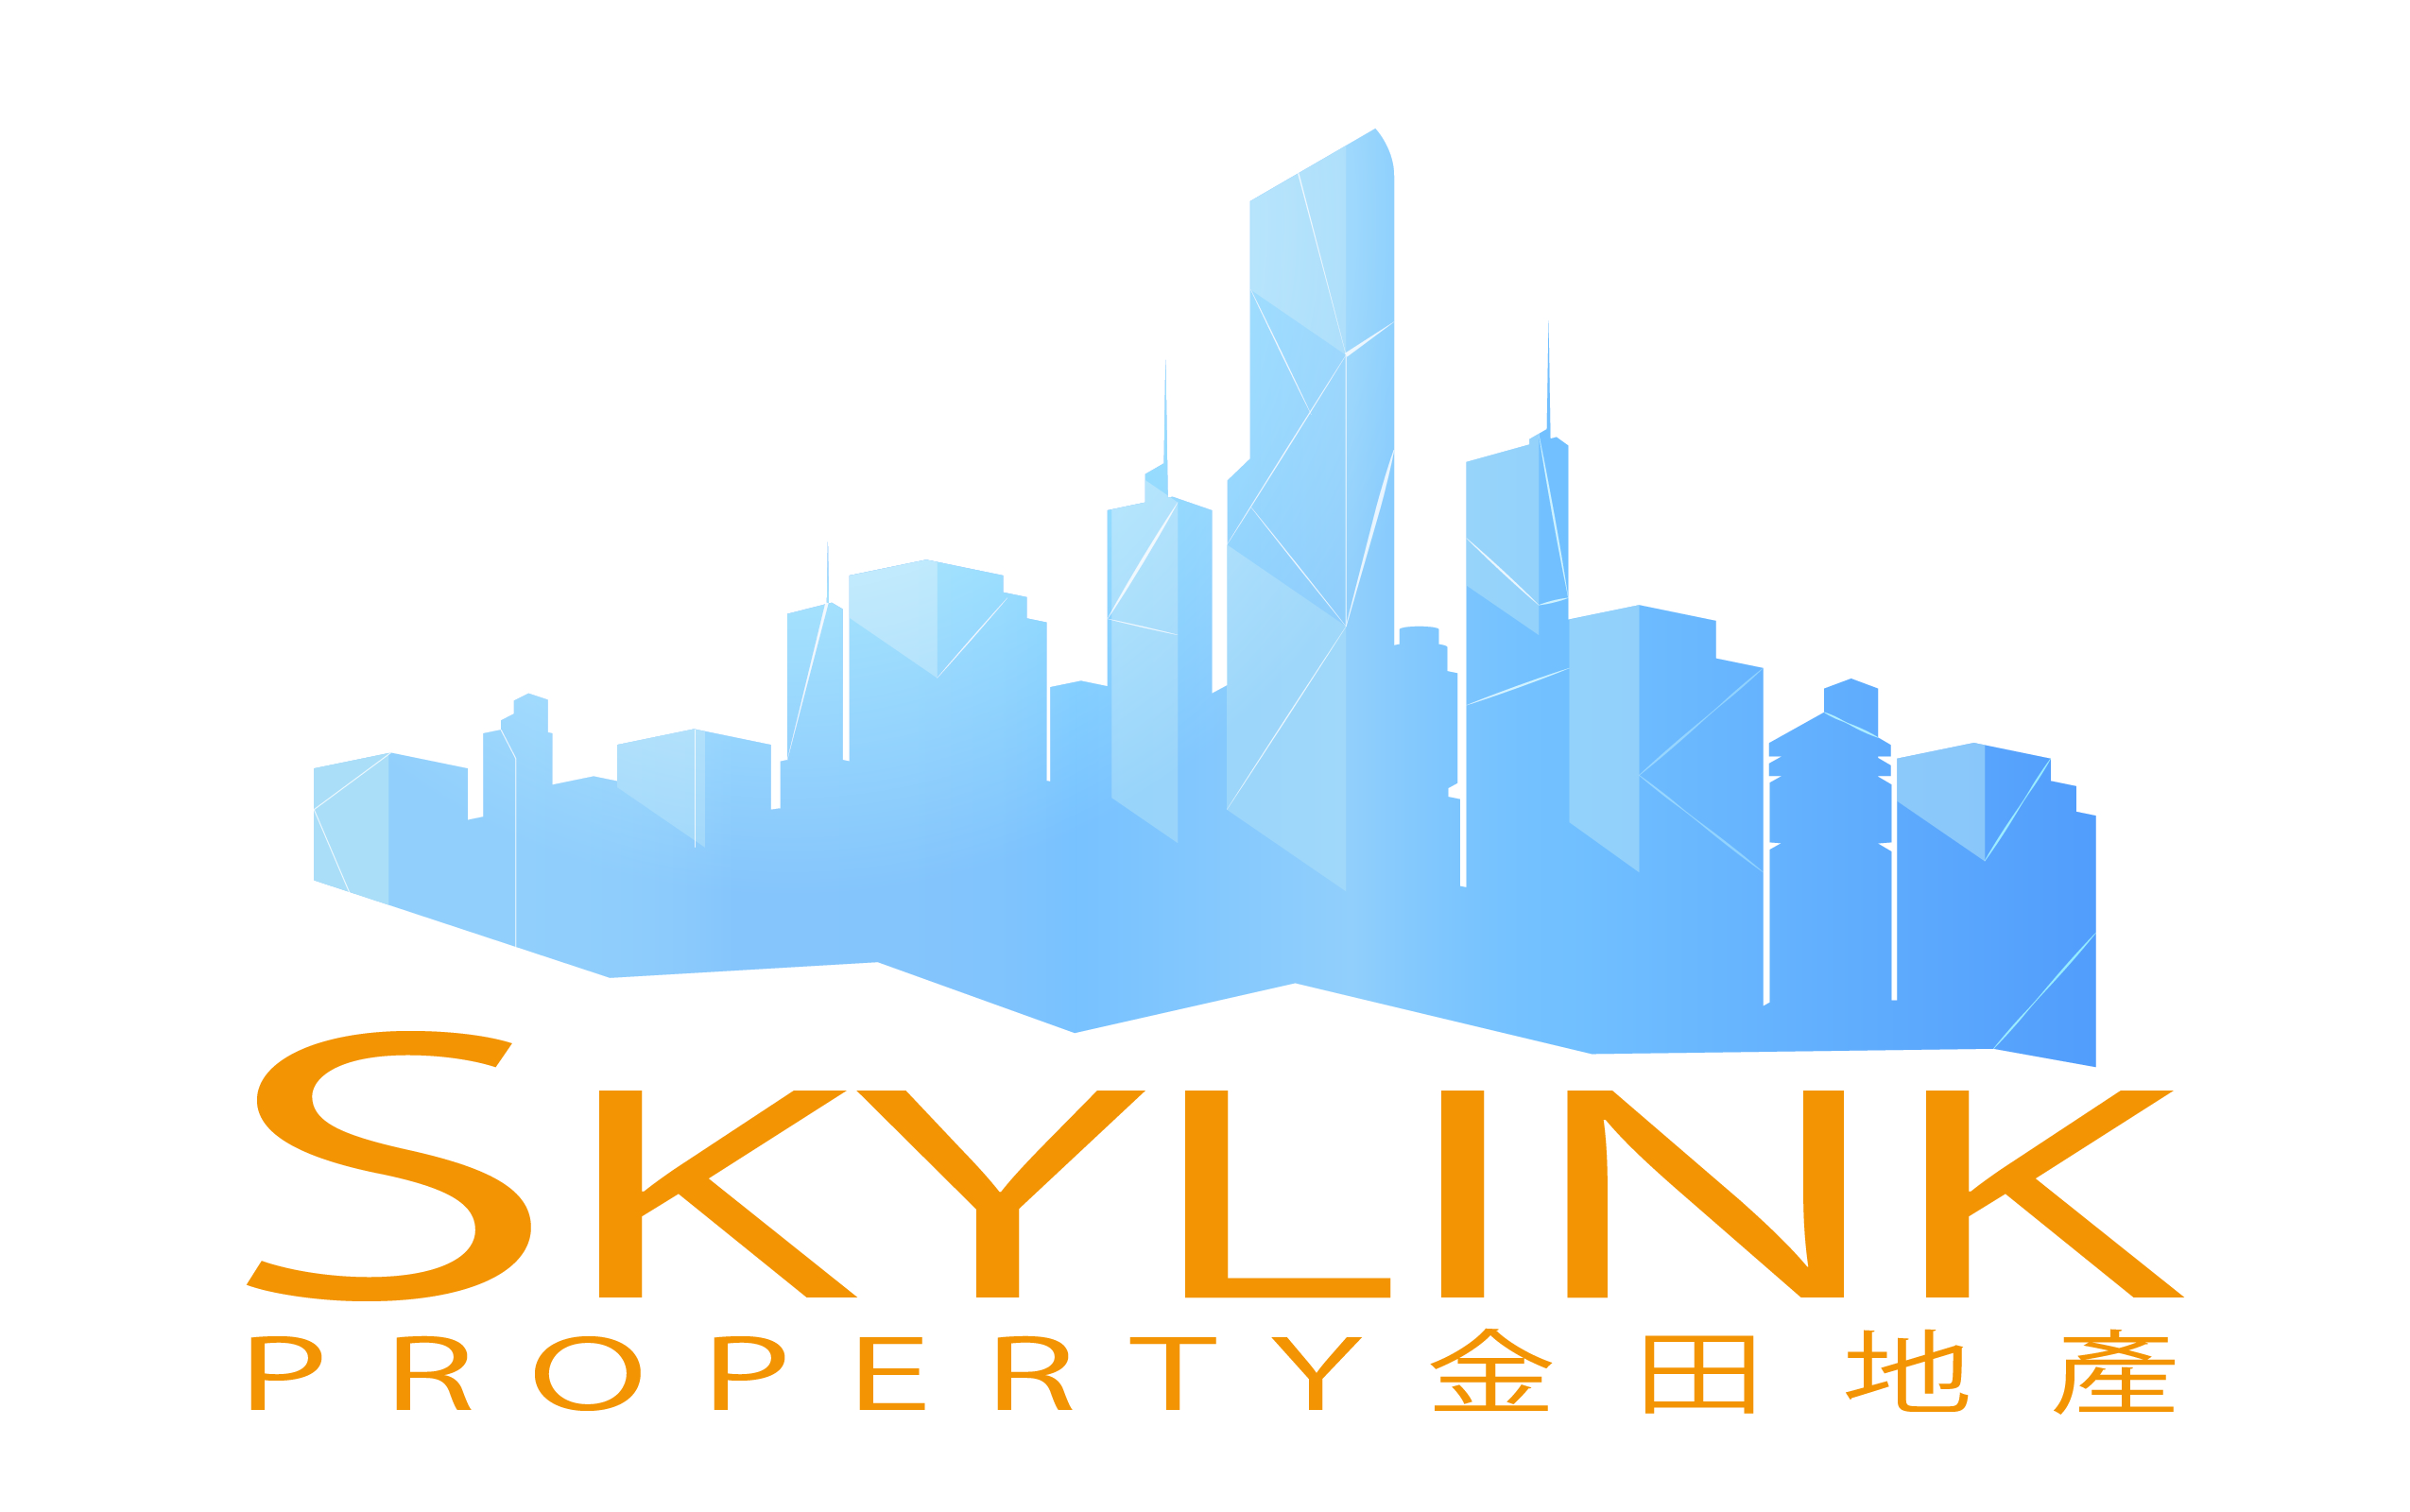 Skylink Property Pty Ltd